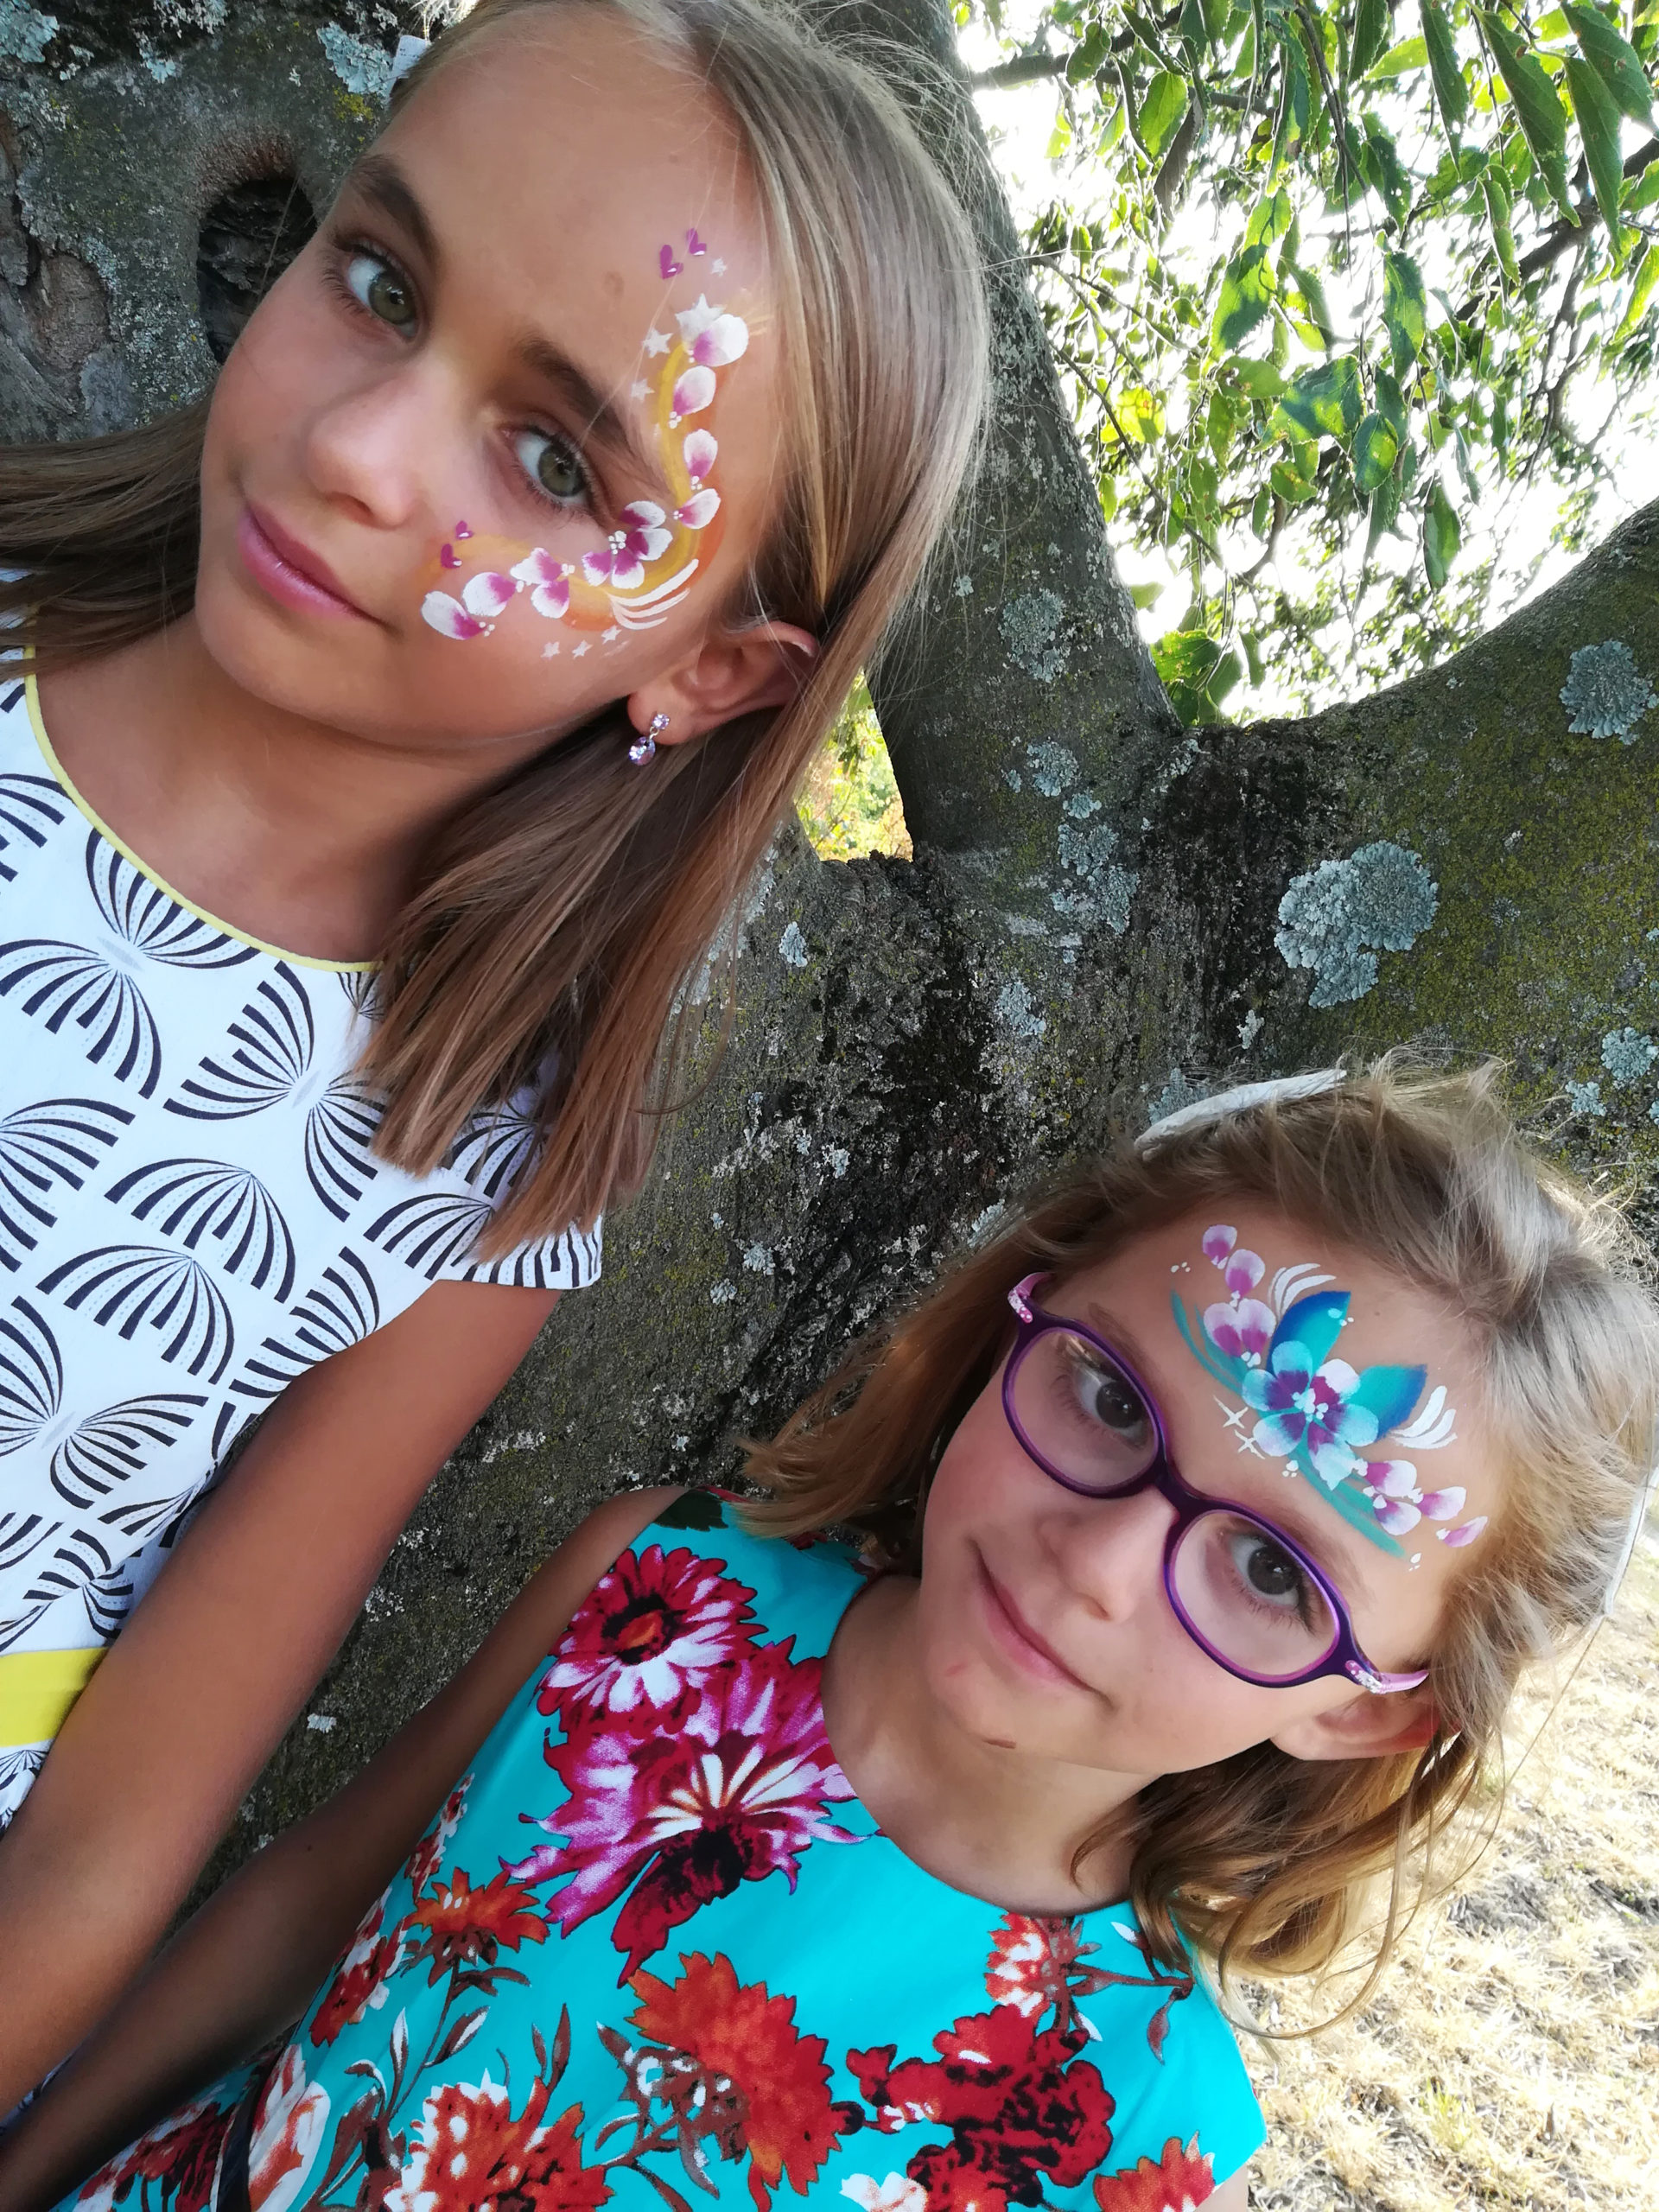 maquillage enfant mariage bapteme ales nimes montpellier